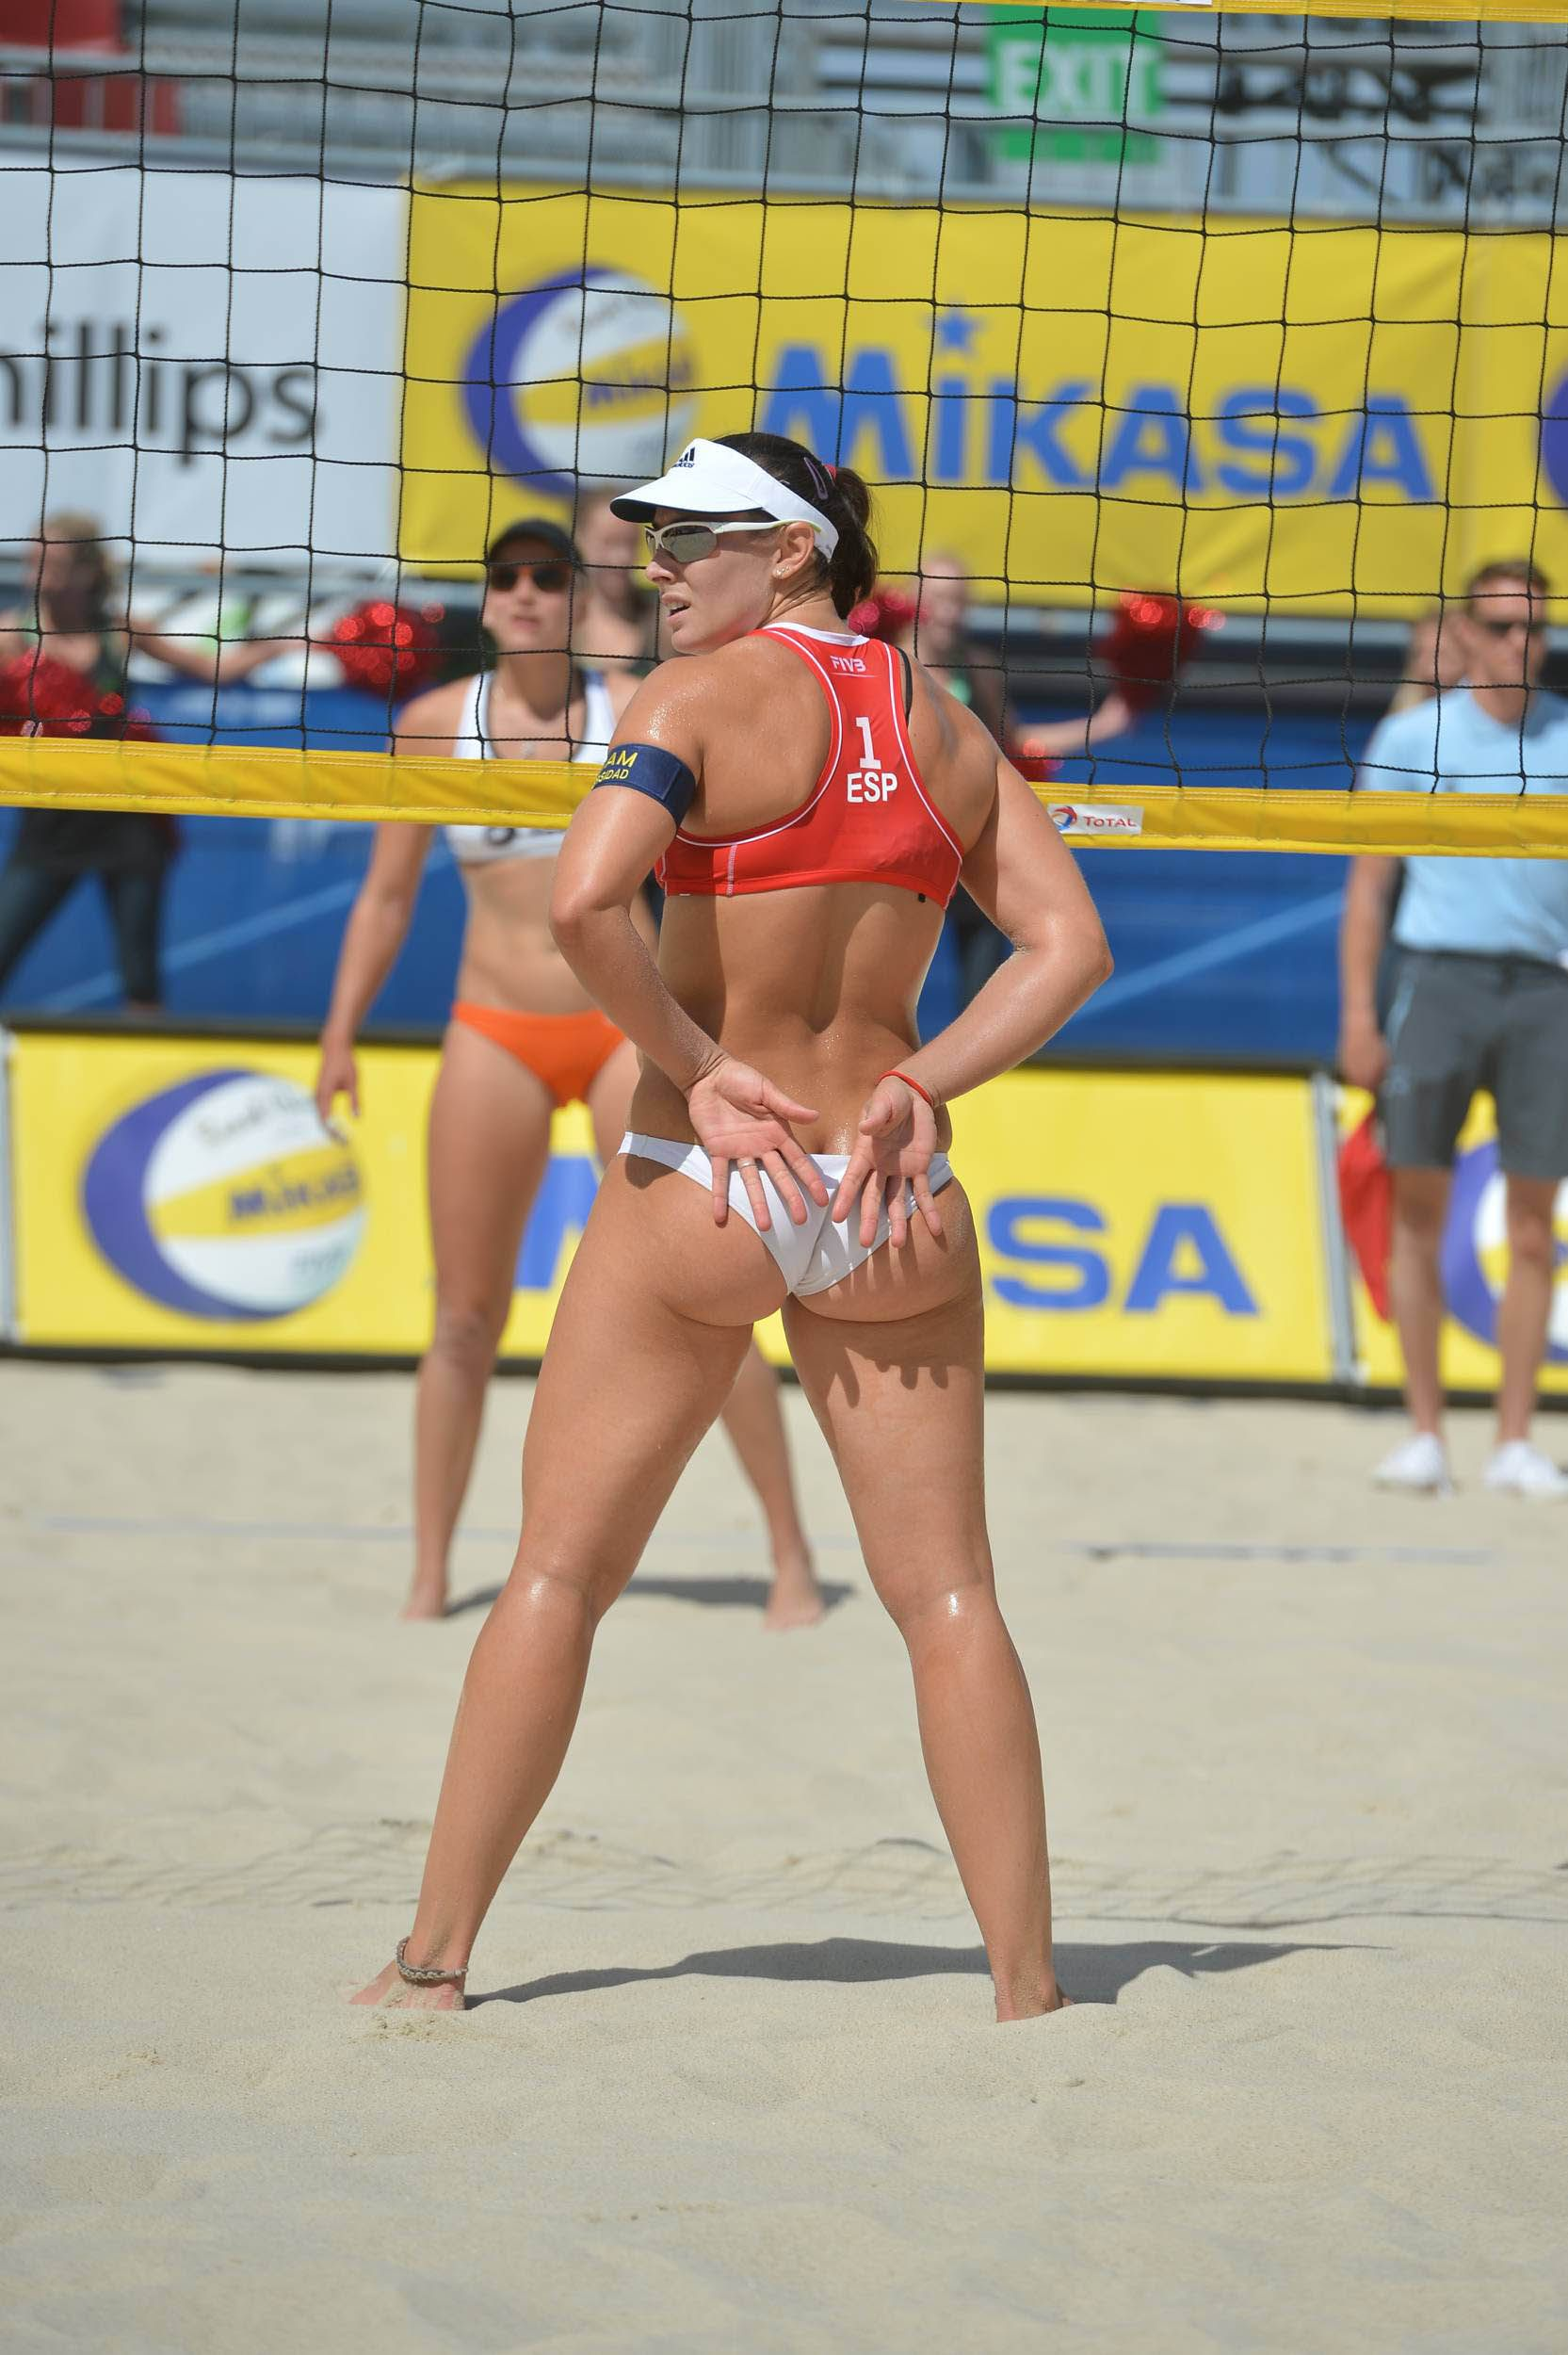 Pin By Luis Puertas On Beach Volleyball In 2020 Swimwear Beach Volleyball Image